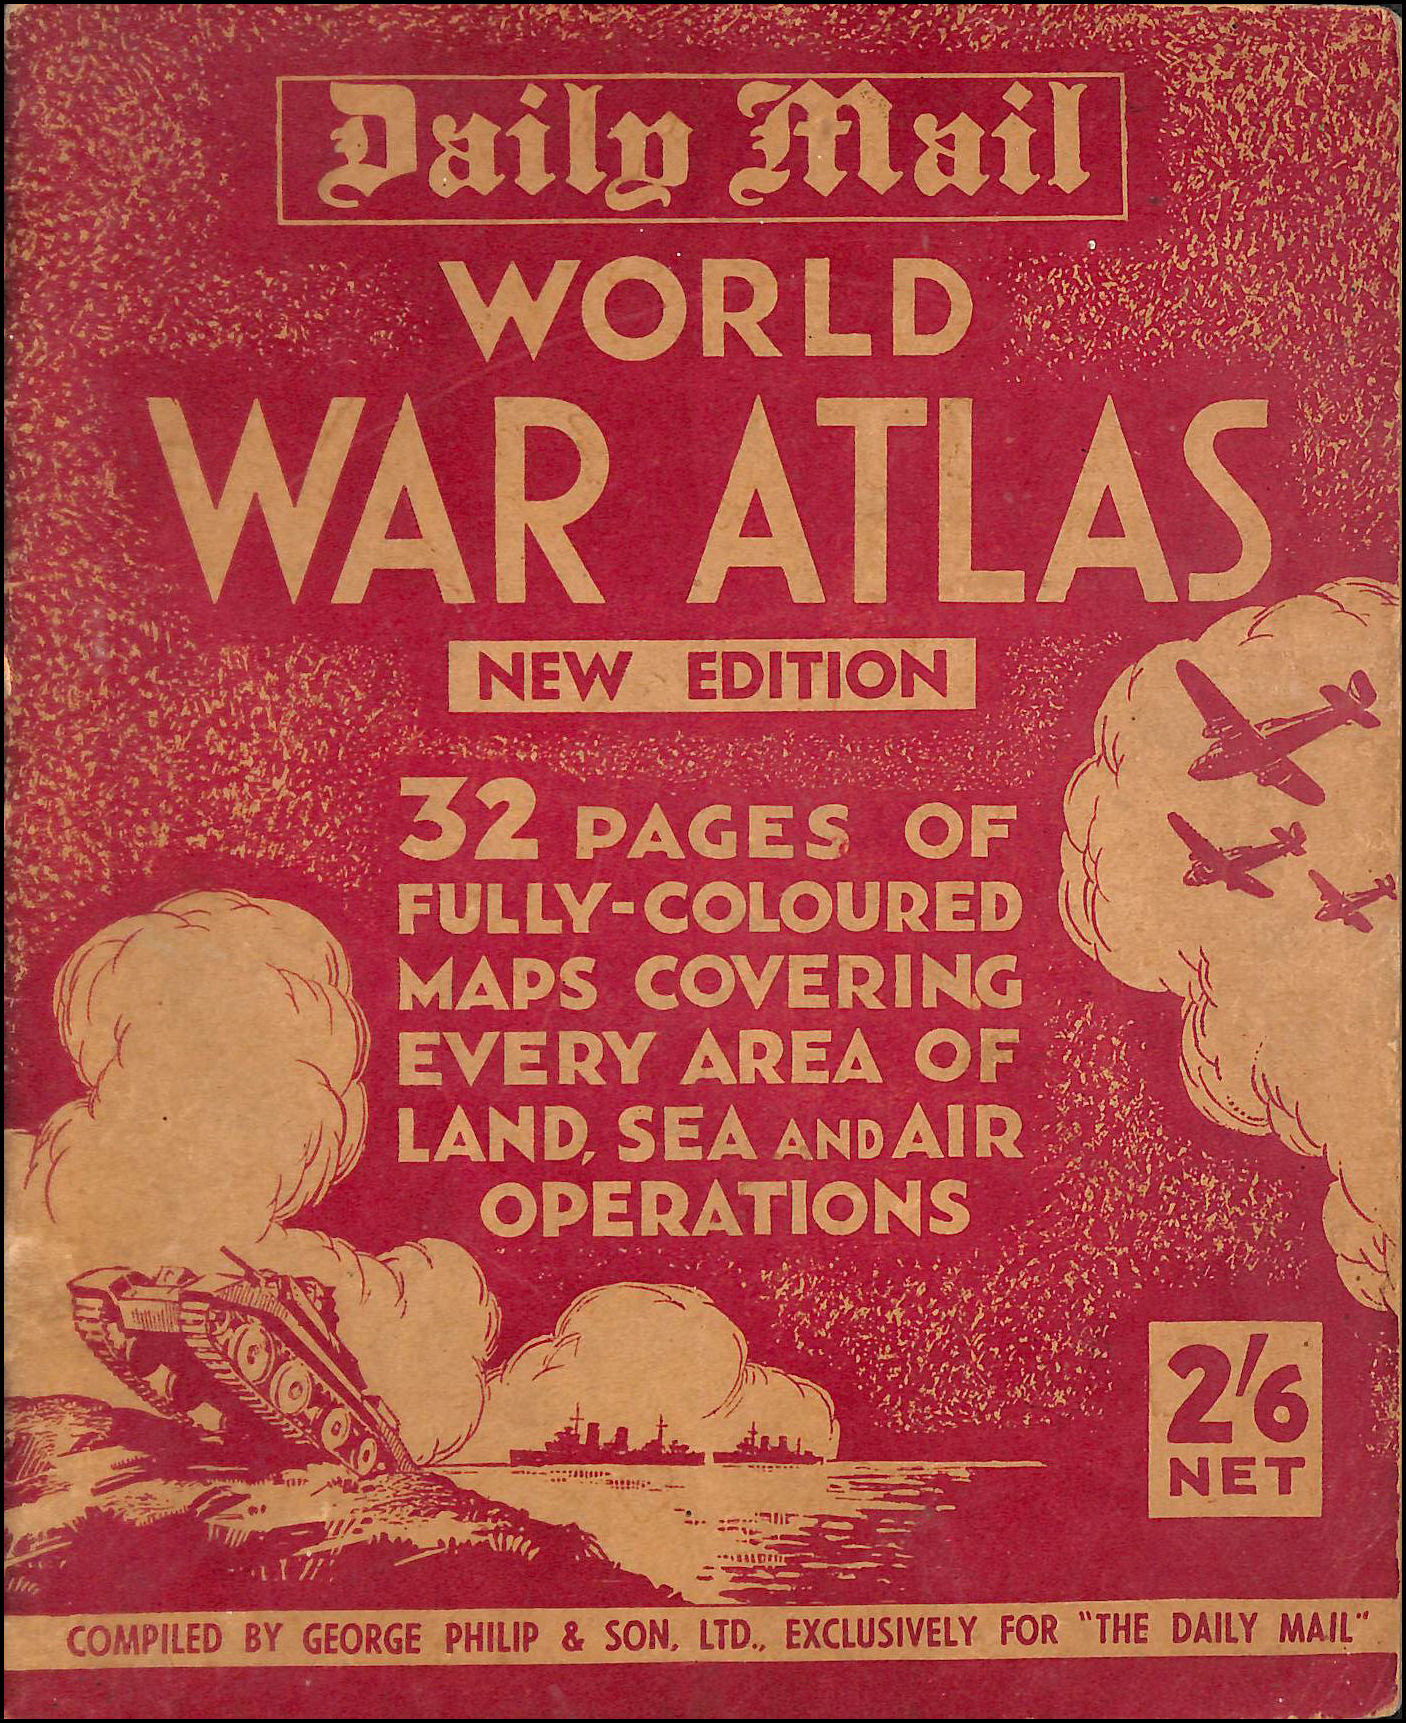 Daily Mail World War Atlas 32 Pages Of Fully-Coloured Maps Covering Every Area Of Land,Sea And Air Operations / Compiled By George Philip & Son Ltd, Exclusively For The Daily Mail. ., Various